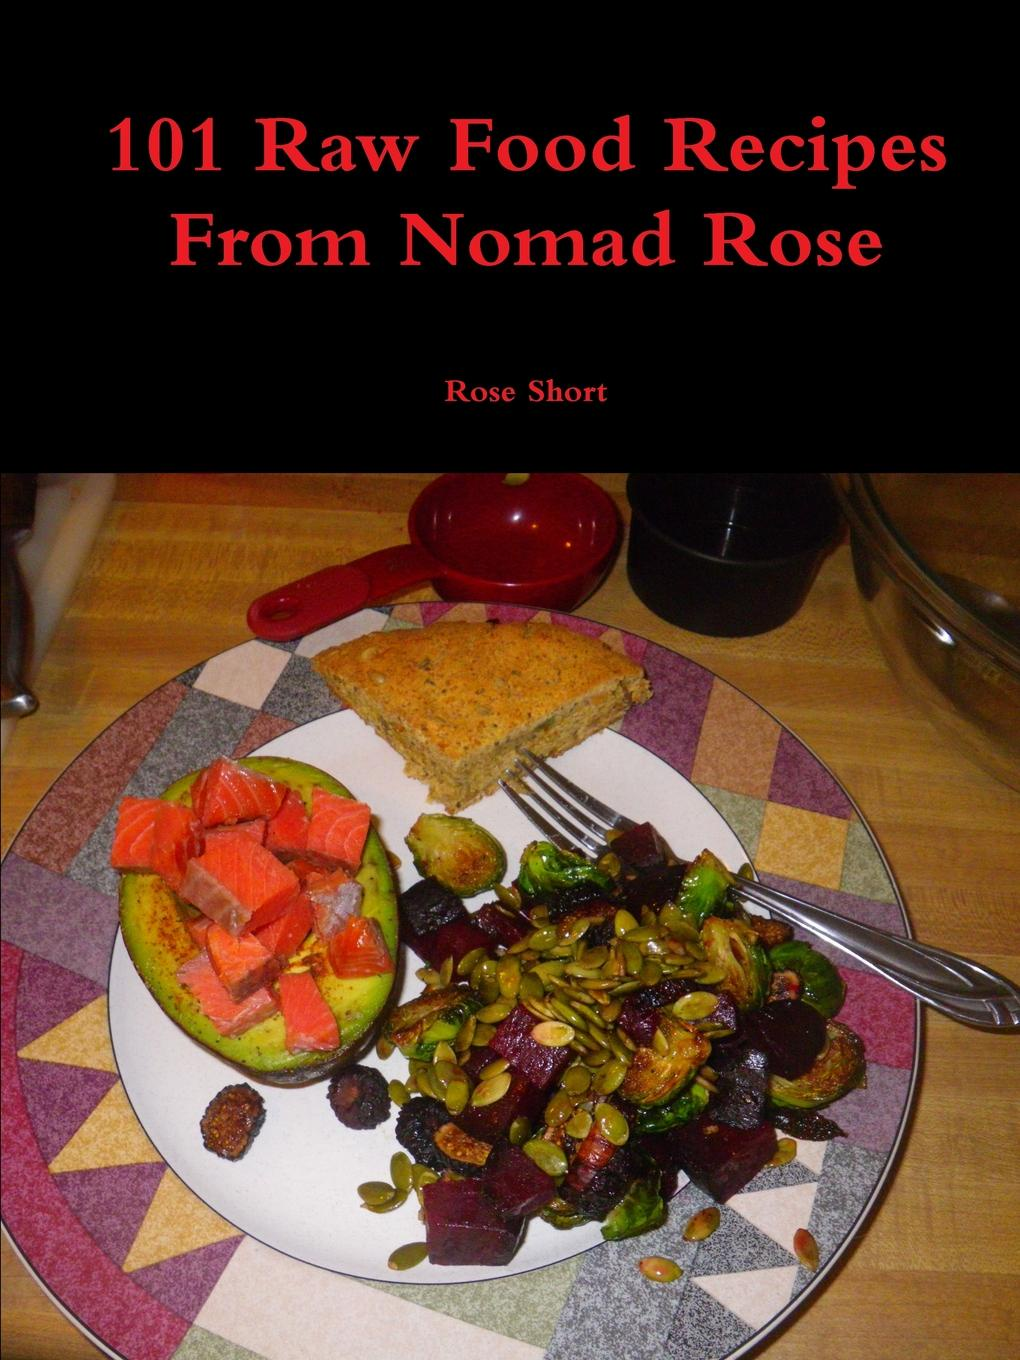 Rose Short 101 Raw Food Recipes From Nomad